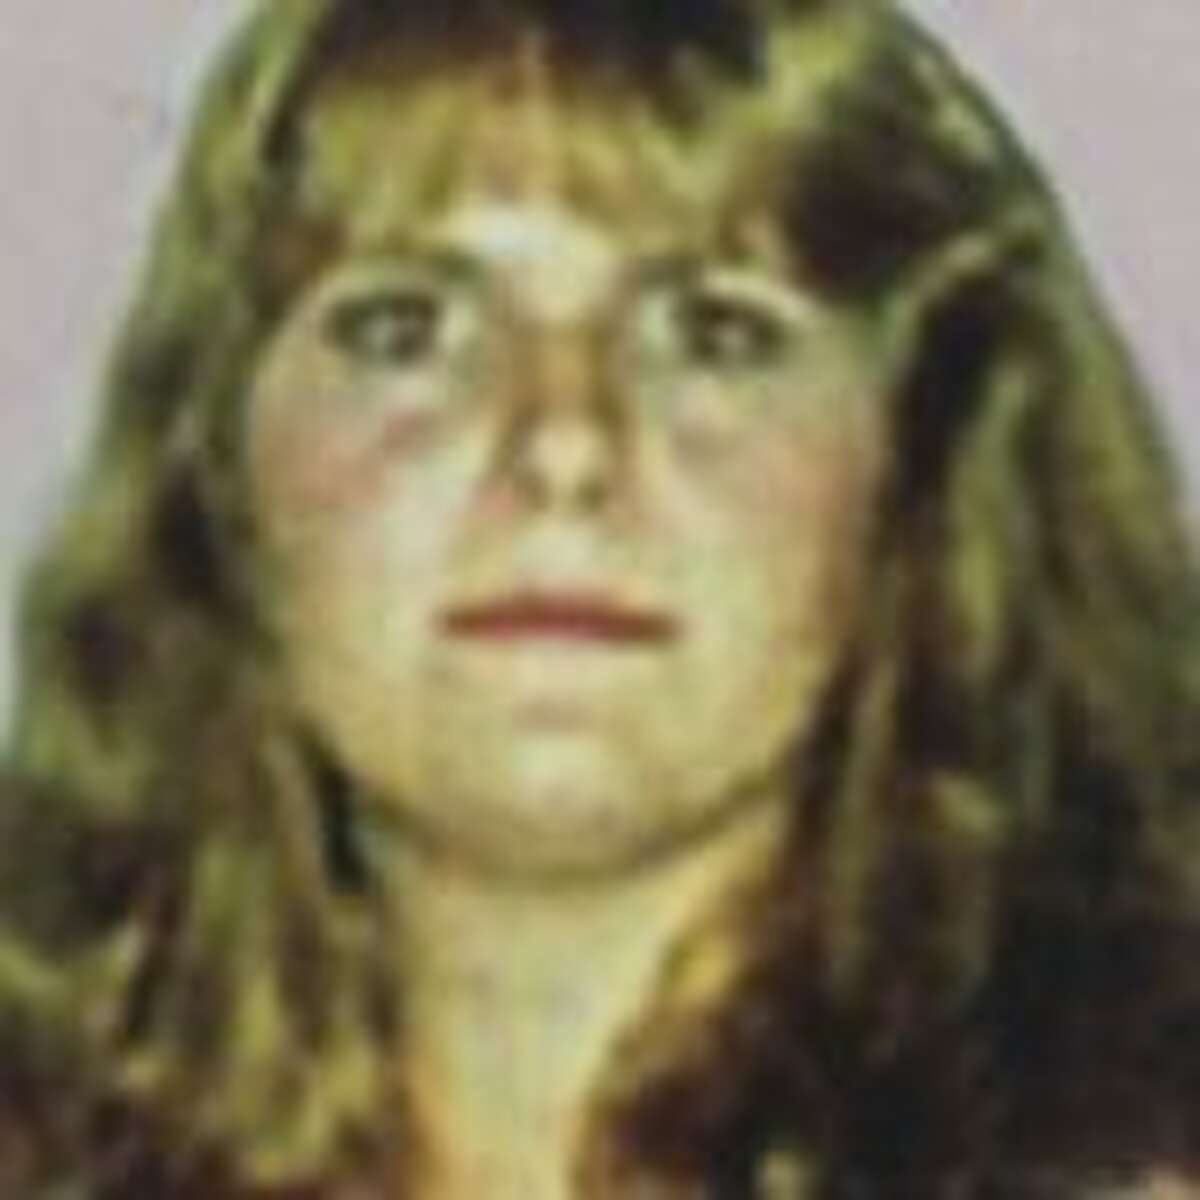 On July 6, 1988, a passing truck driver found 28-year-old Pamela Ann Devizzio's remains in a ditch on the side of Putnam Road, just east of Jacob Drive. Devizzio's father had reported her missing to Saratoga Springs police the day before her body was found. (Saratoga County Sheriff's Office)